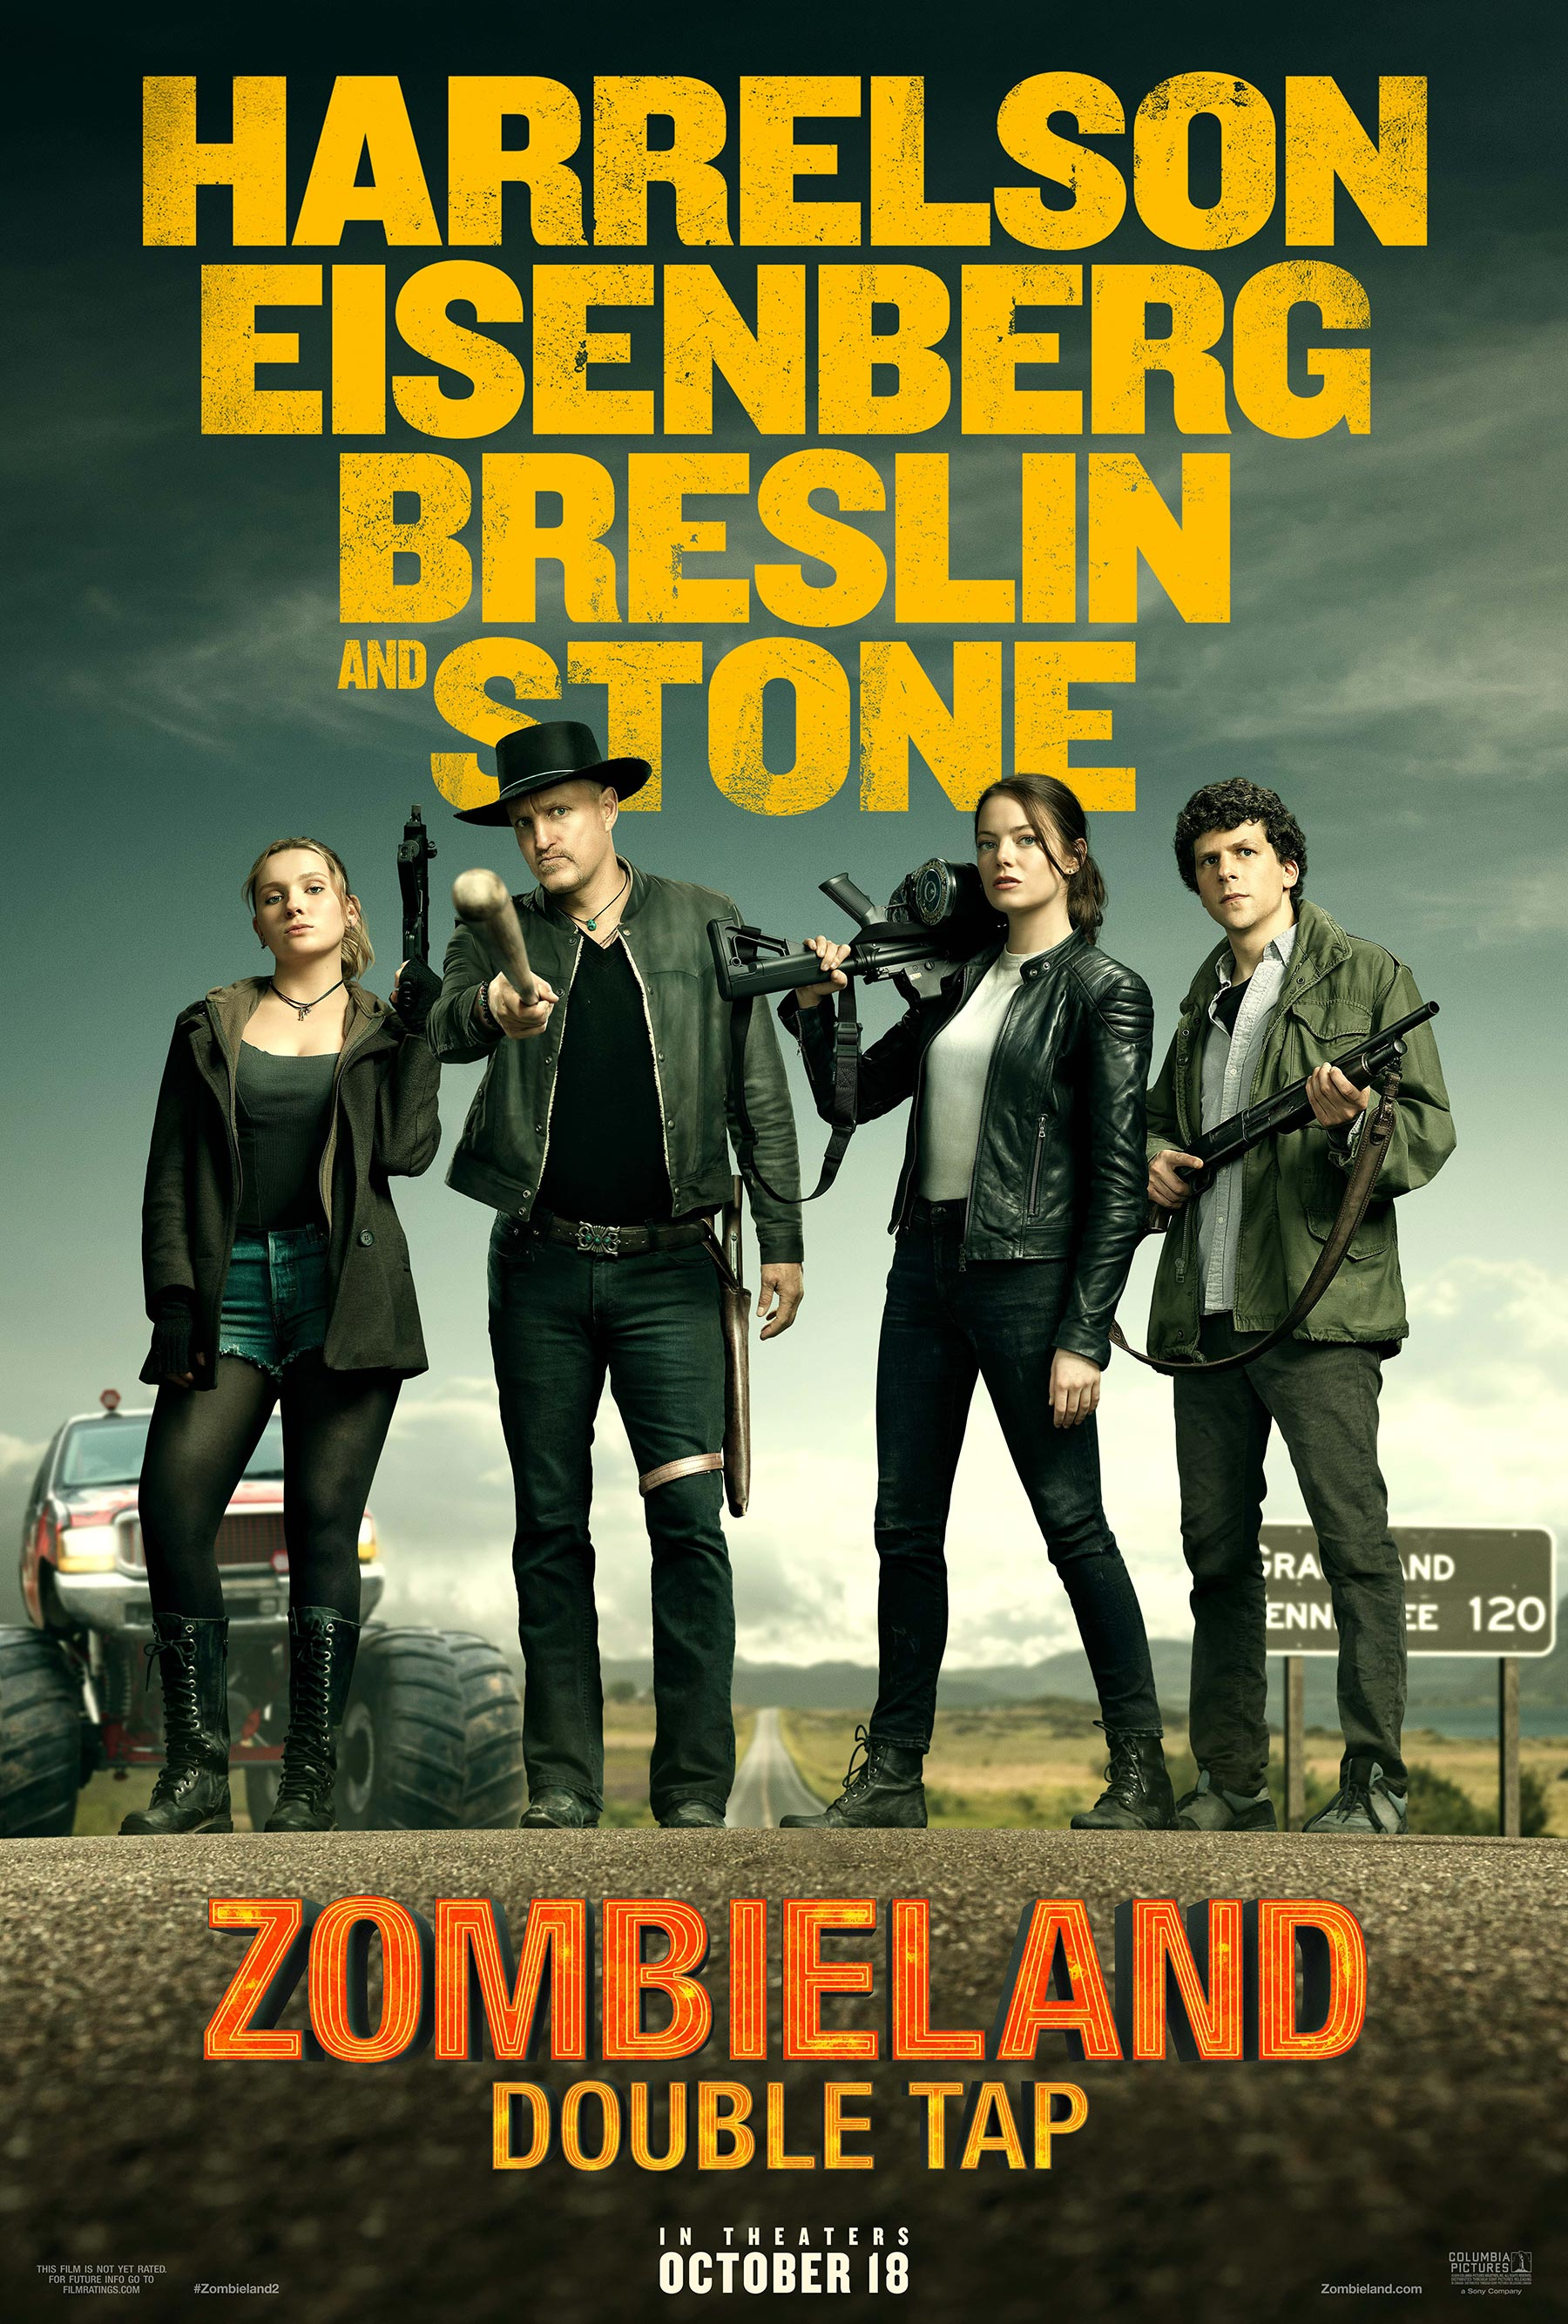 Zombieland 2 Trailer Brings The Double Tap Cosmic Book News